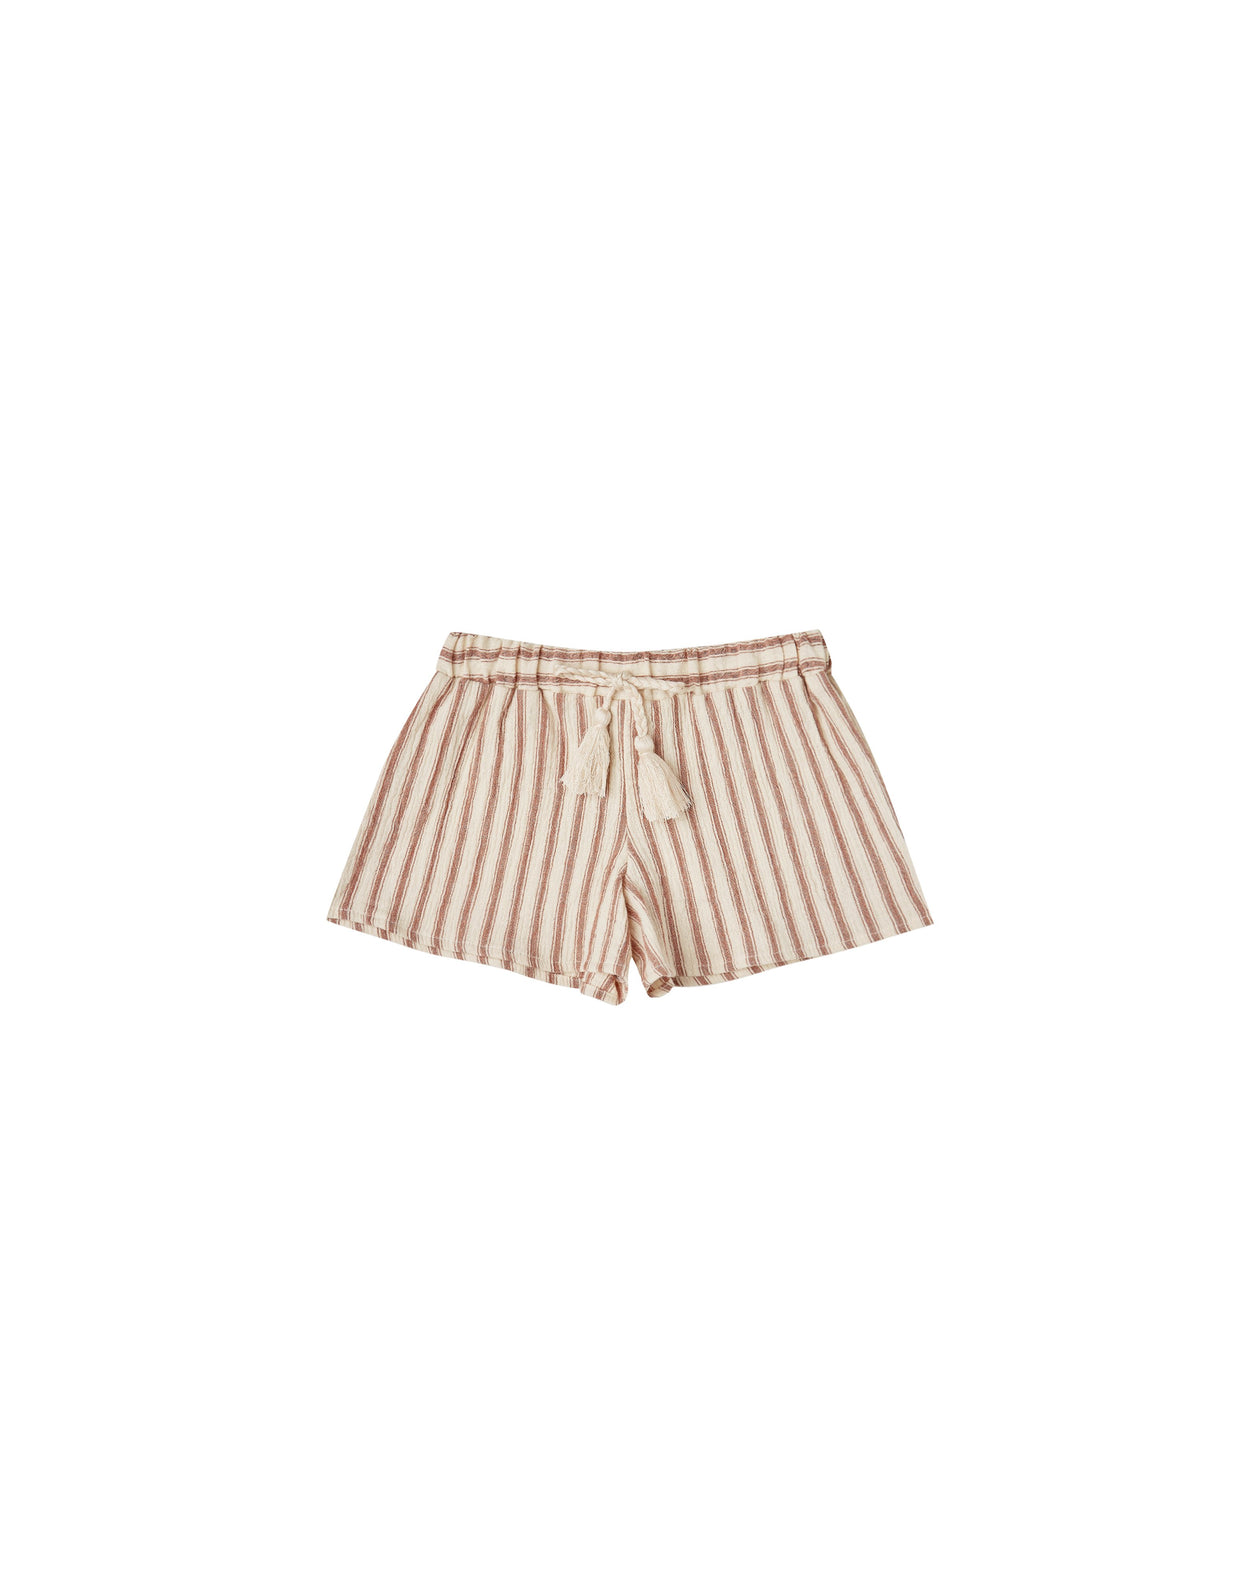 The Rylee & Cru Striped Solana Short Natural Amber